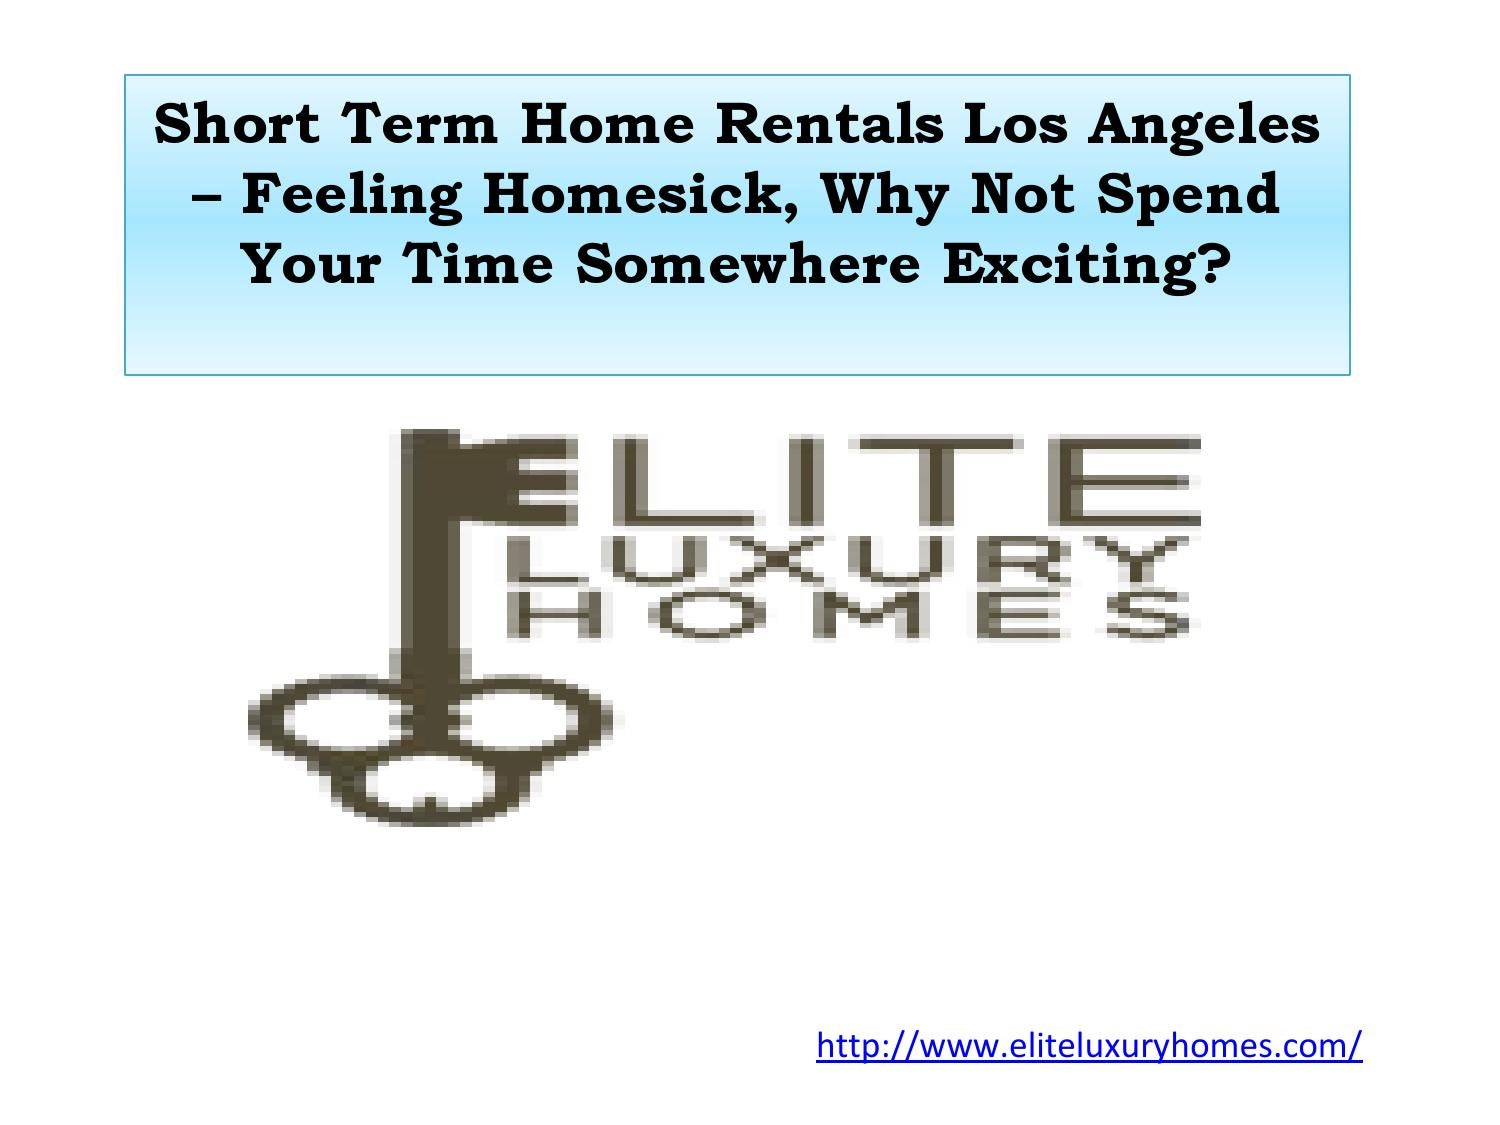 Short term home rentals los angeles feeling homesick for Los angeles short term rental